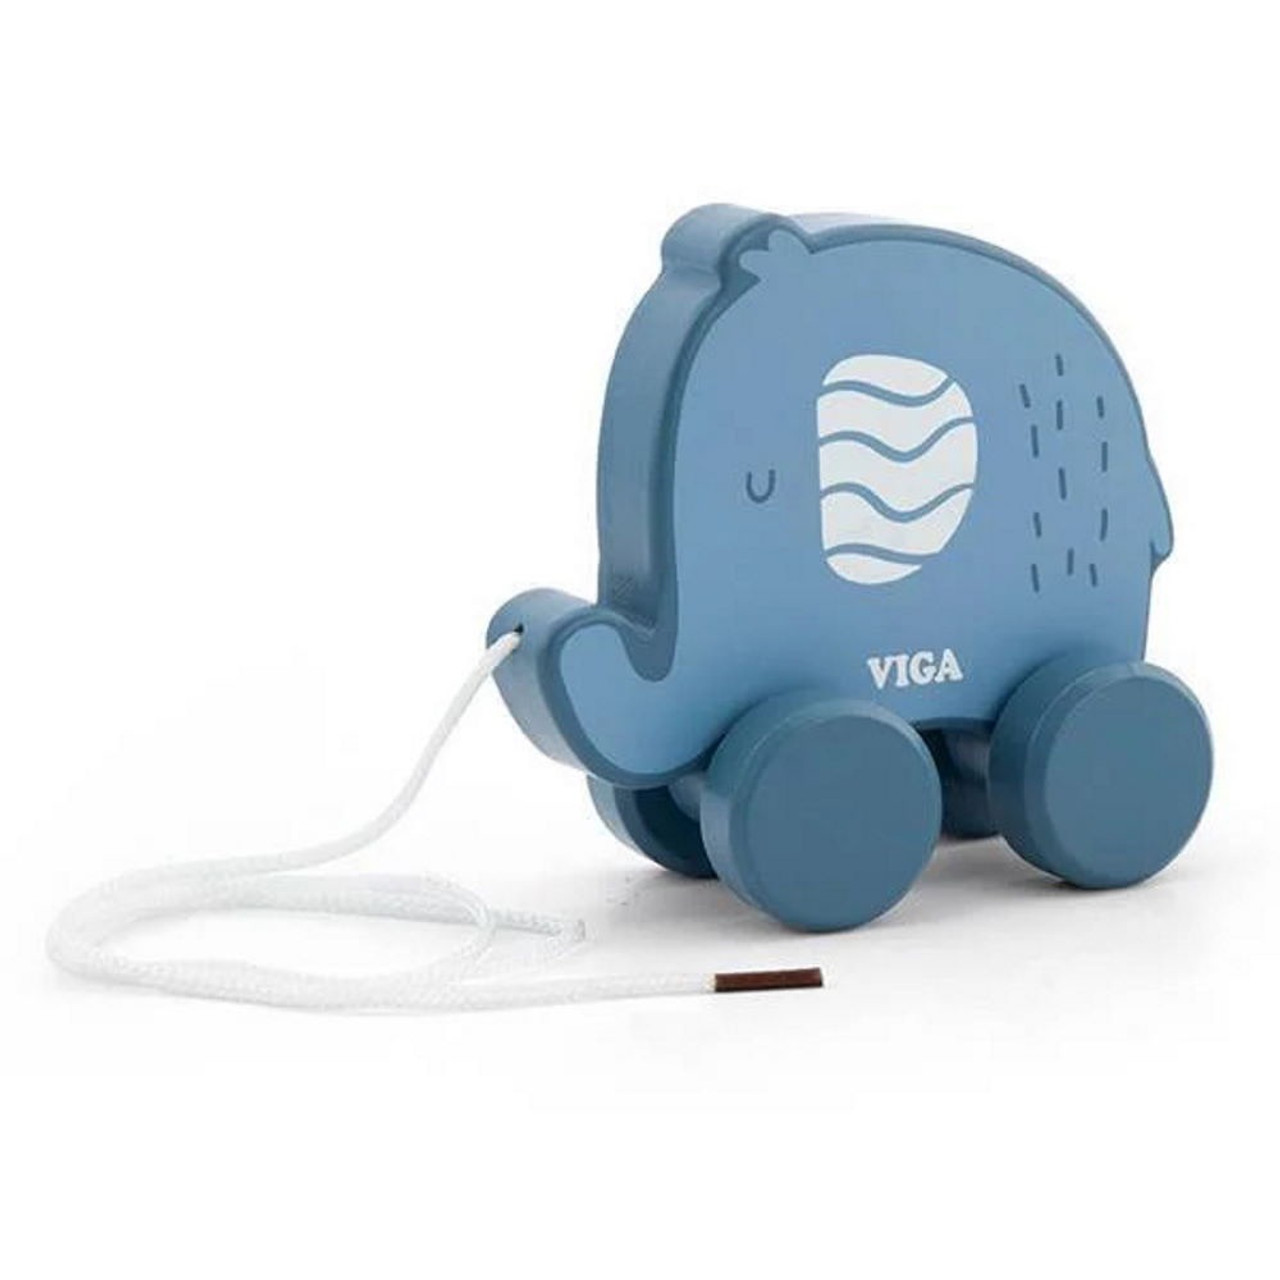 Viga PolarB Pull Along Animals at Baby Barn Discounts A sturdy wooden elephant with a long pull along cord, great for imagination and motor skills.